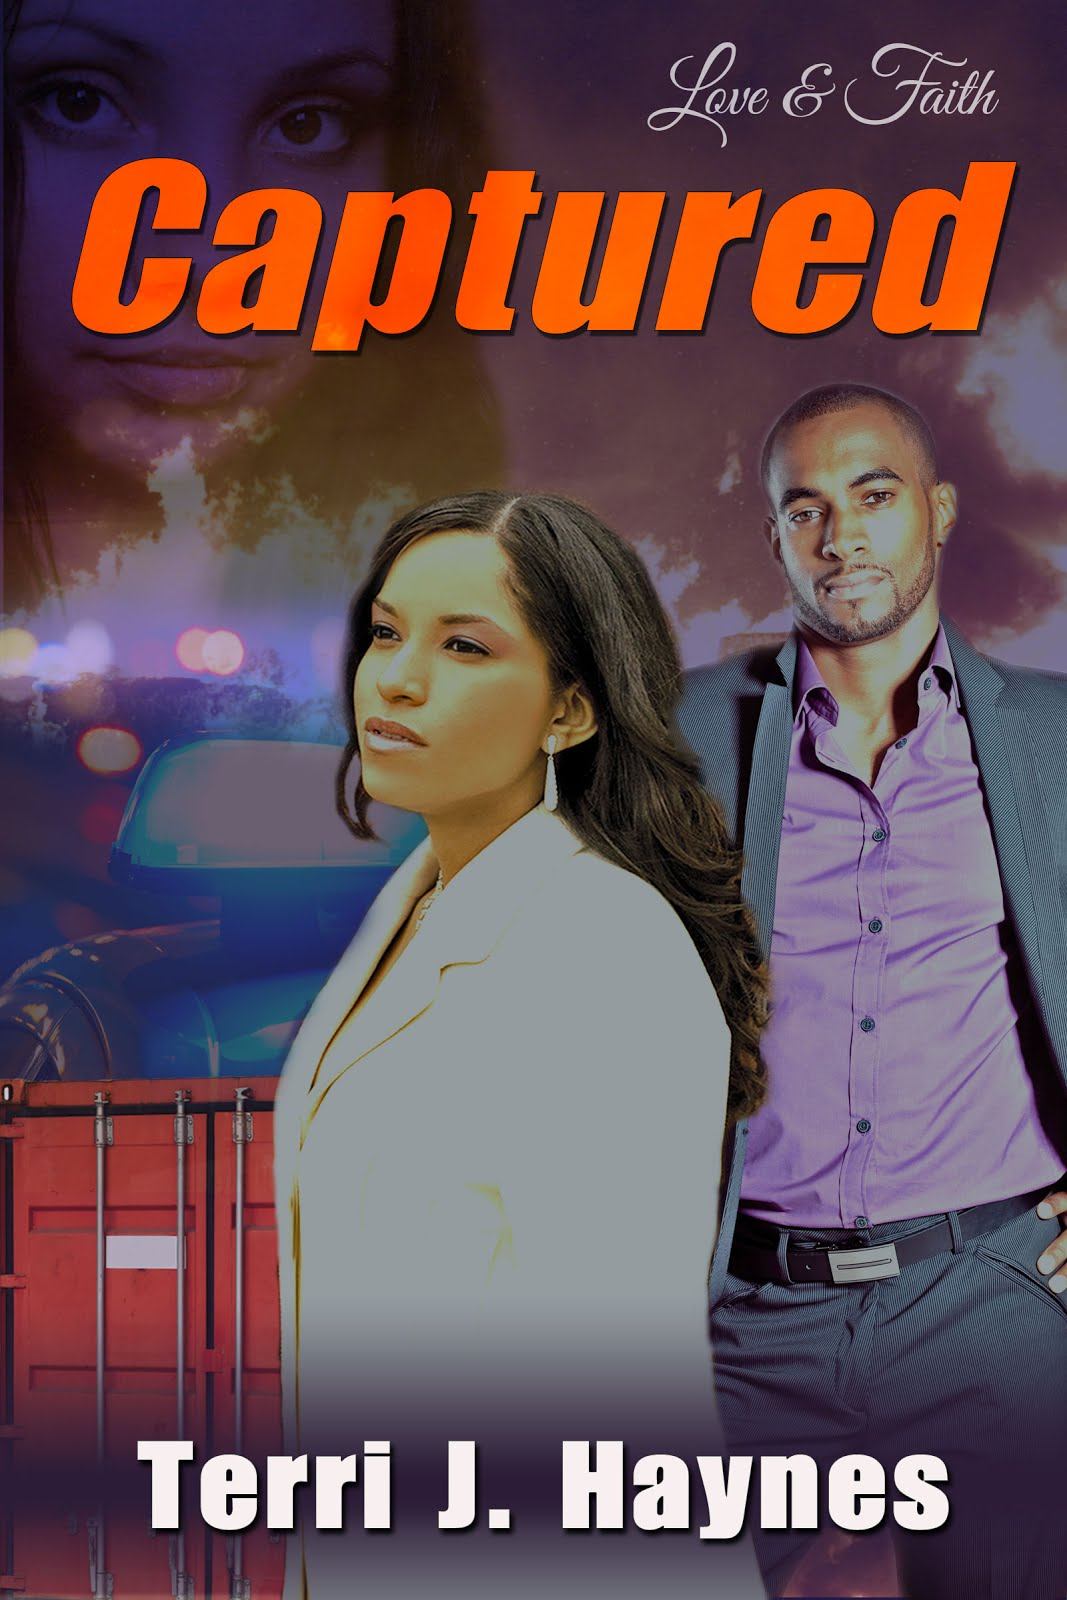 Pick up your copy of Captured today!